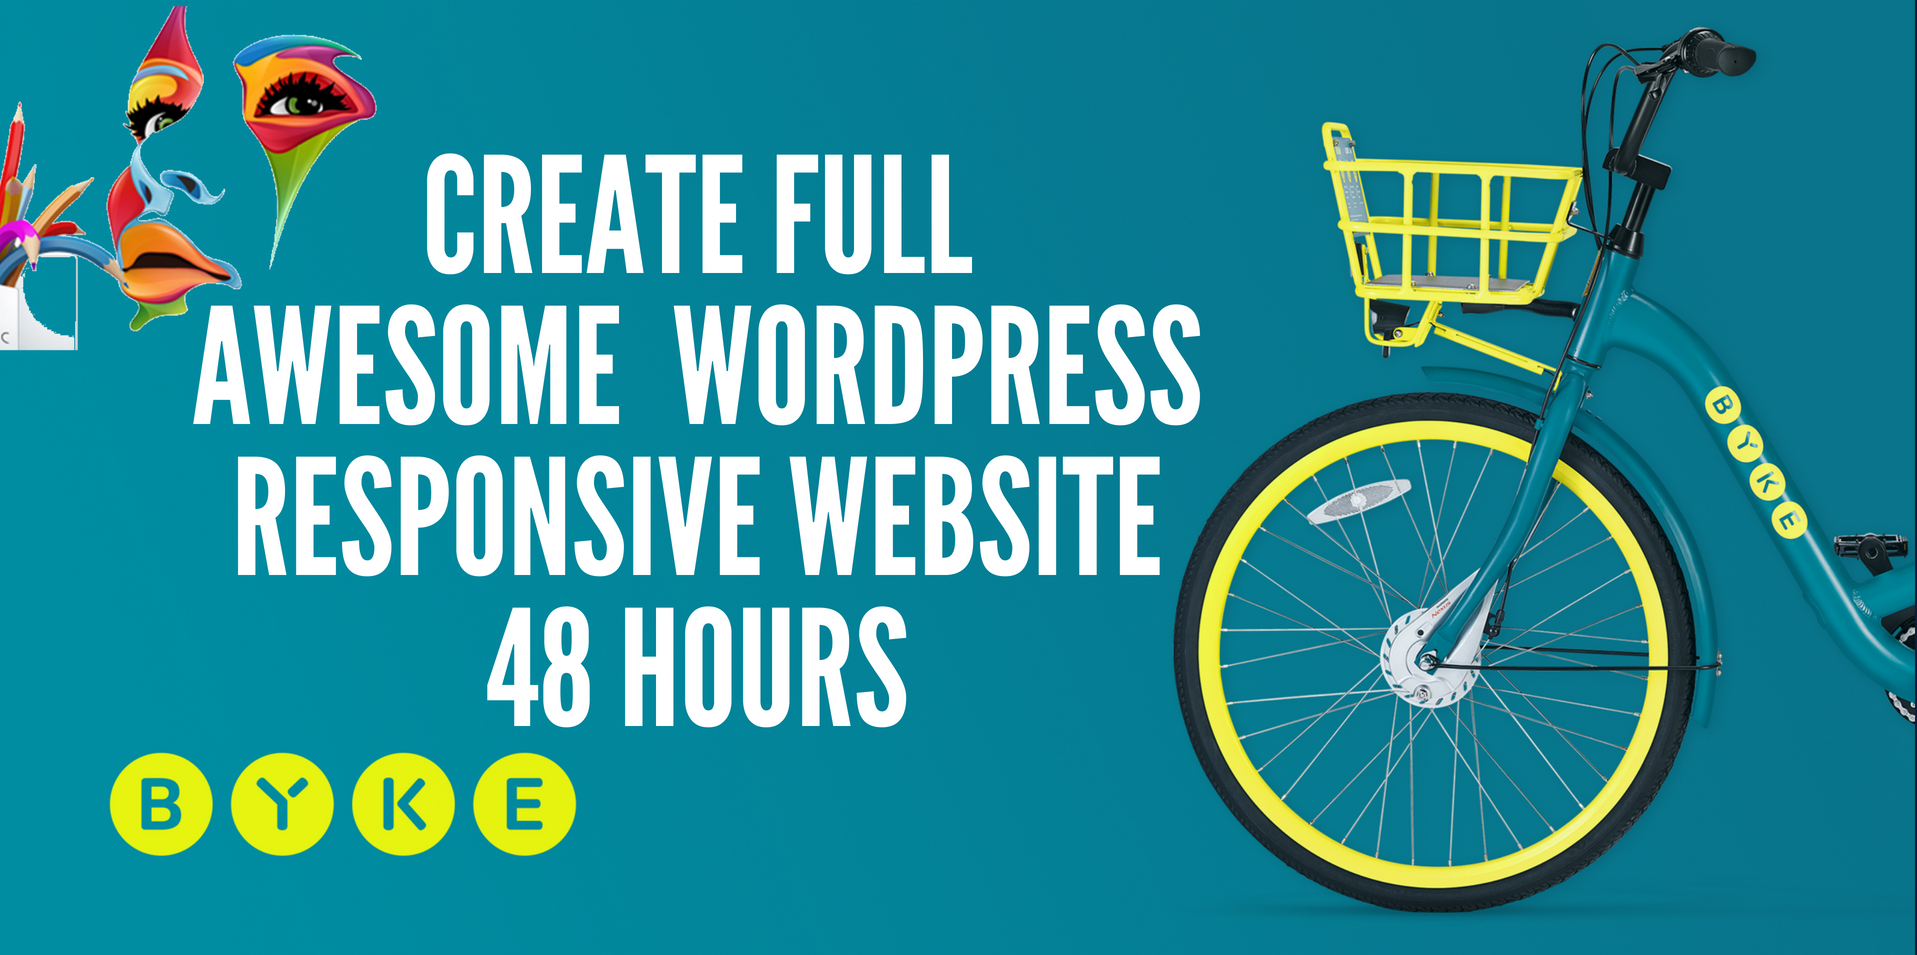 Create Awesome WORDPRESS Responsive Website 48 Hours